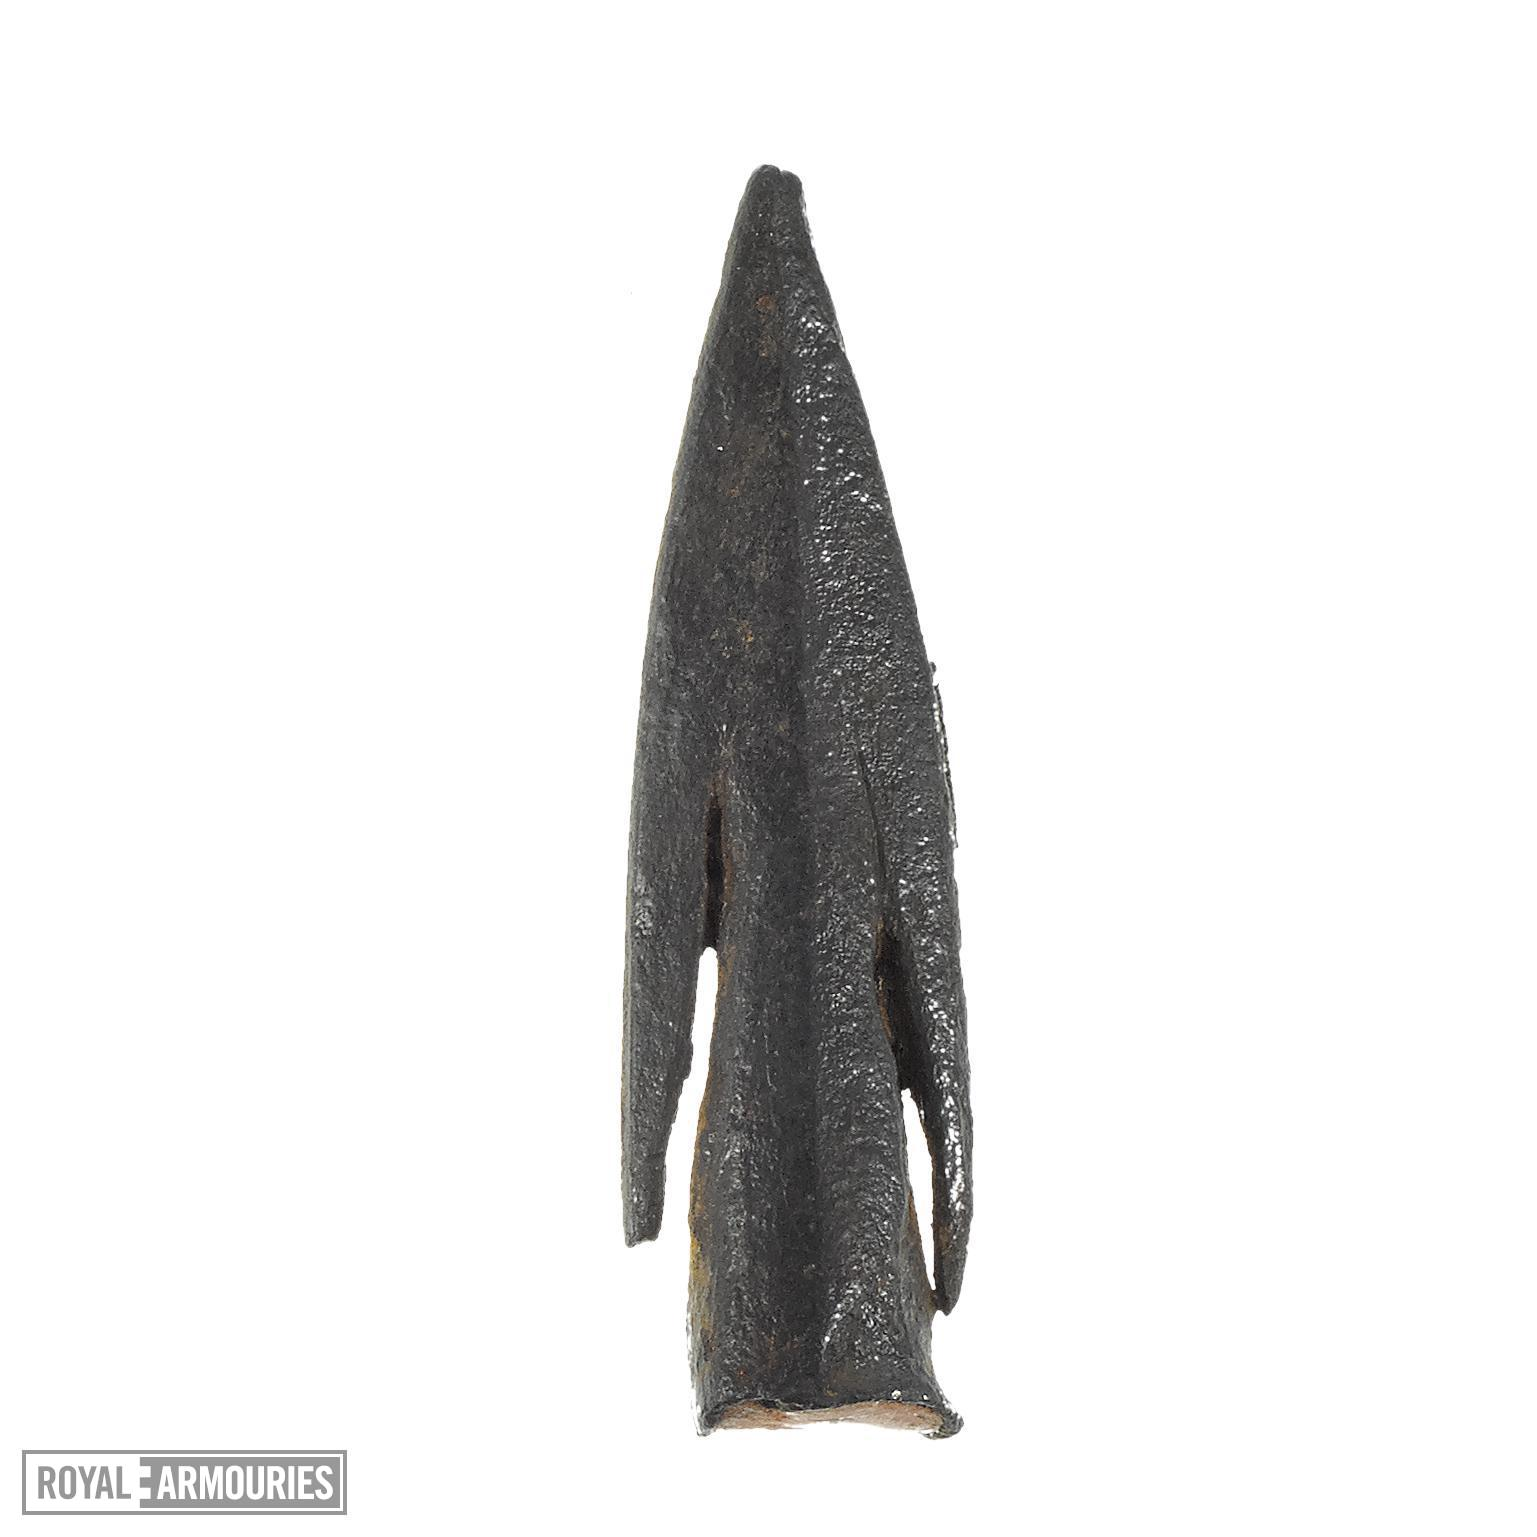 Arrow head, English, 11th to 15th centuries (XI.526)